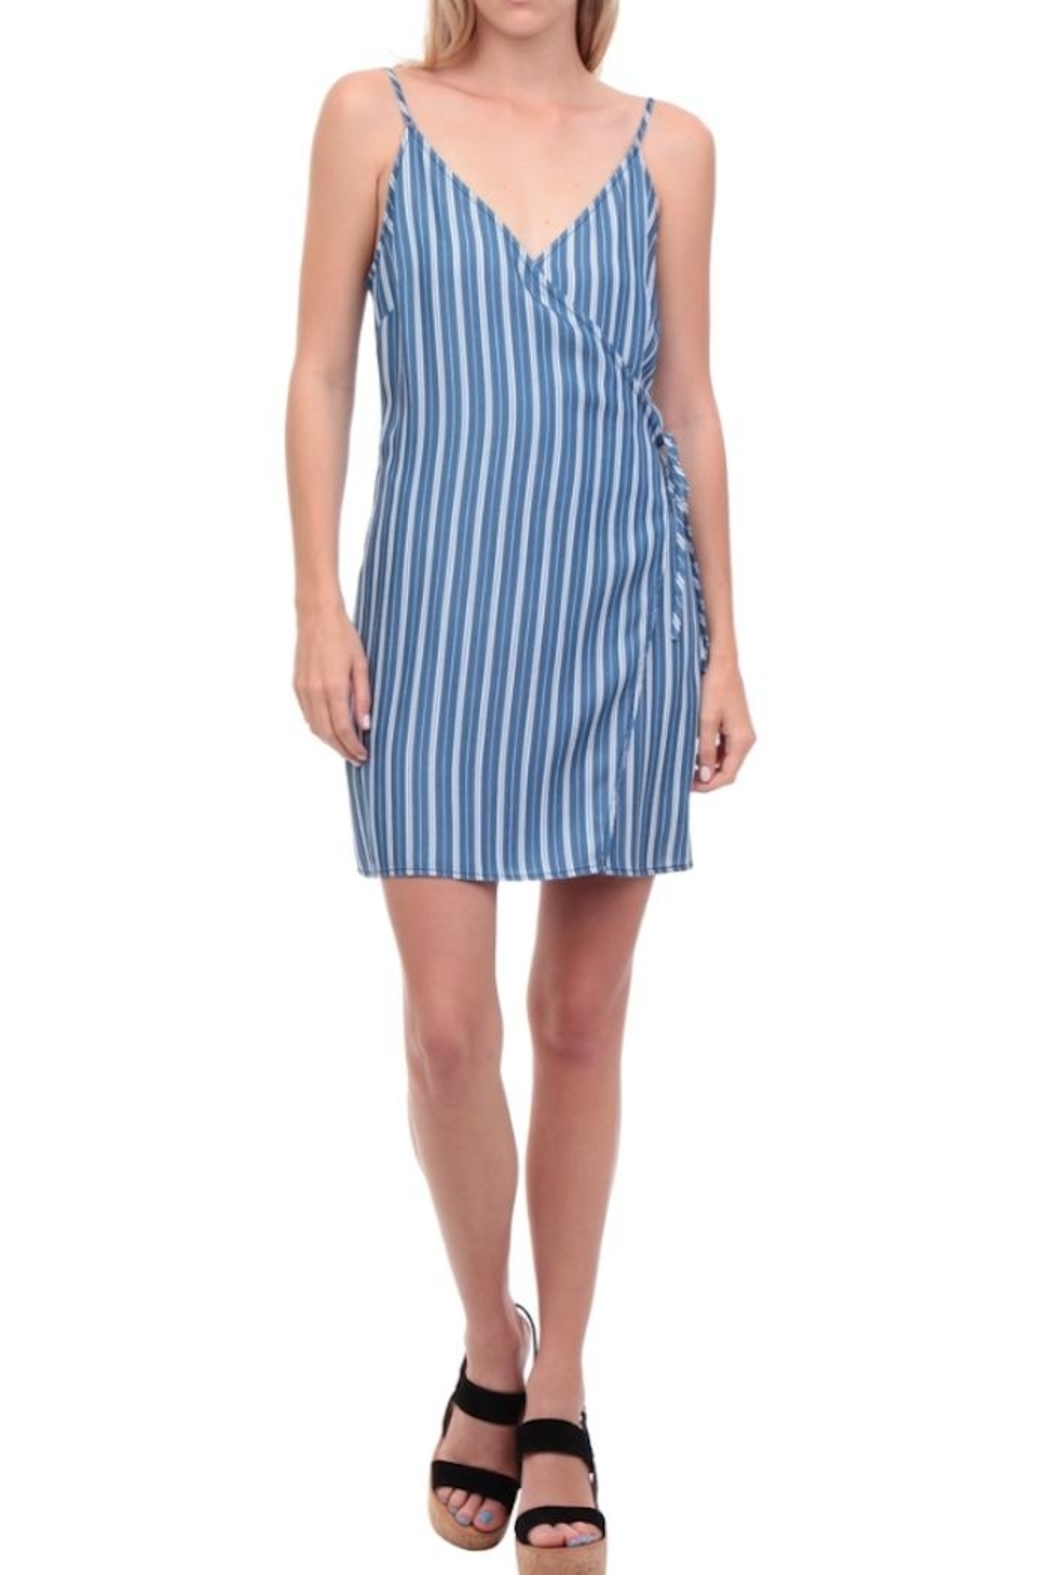 Naked Zebra Stripe Wrap Dress - Main Image